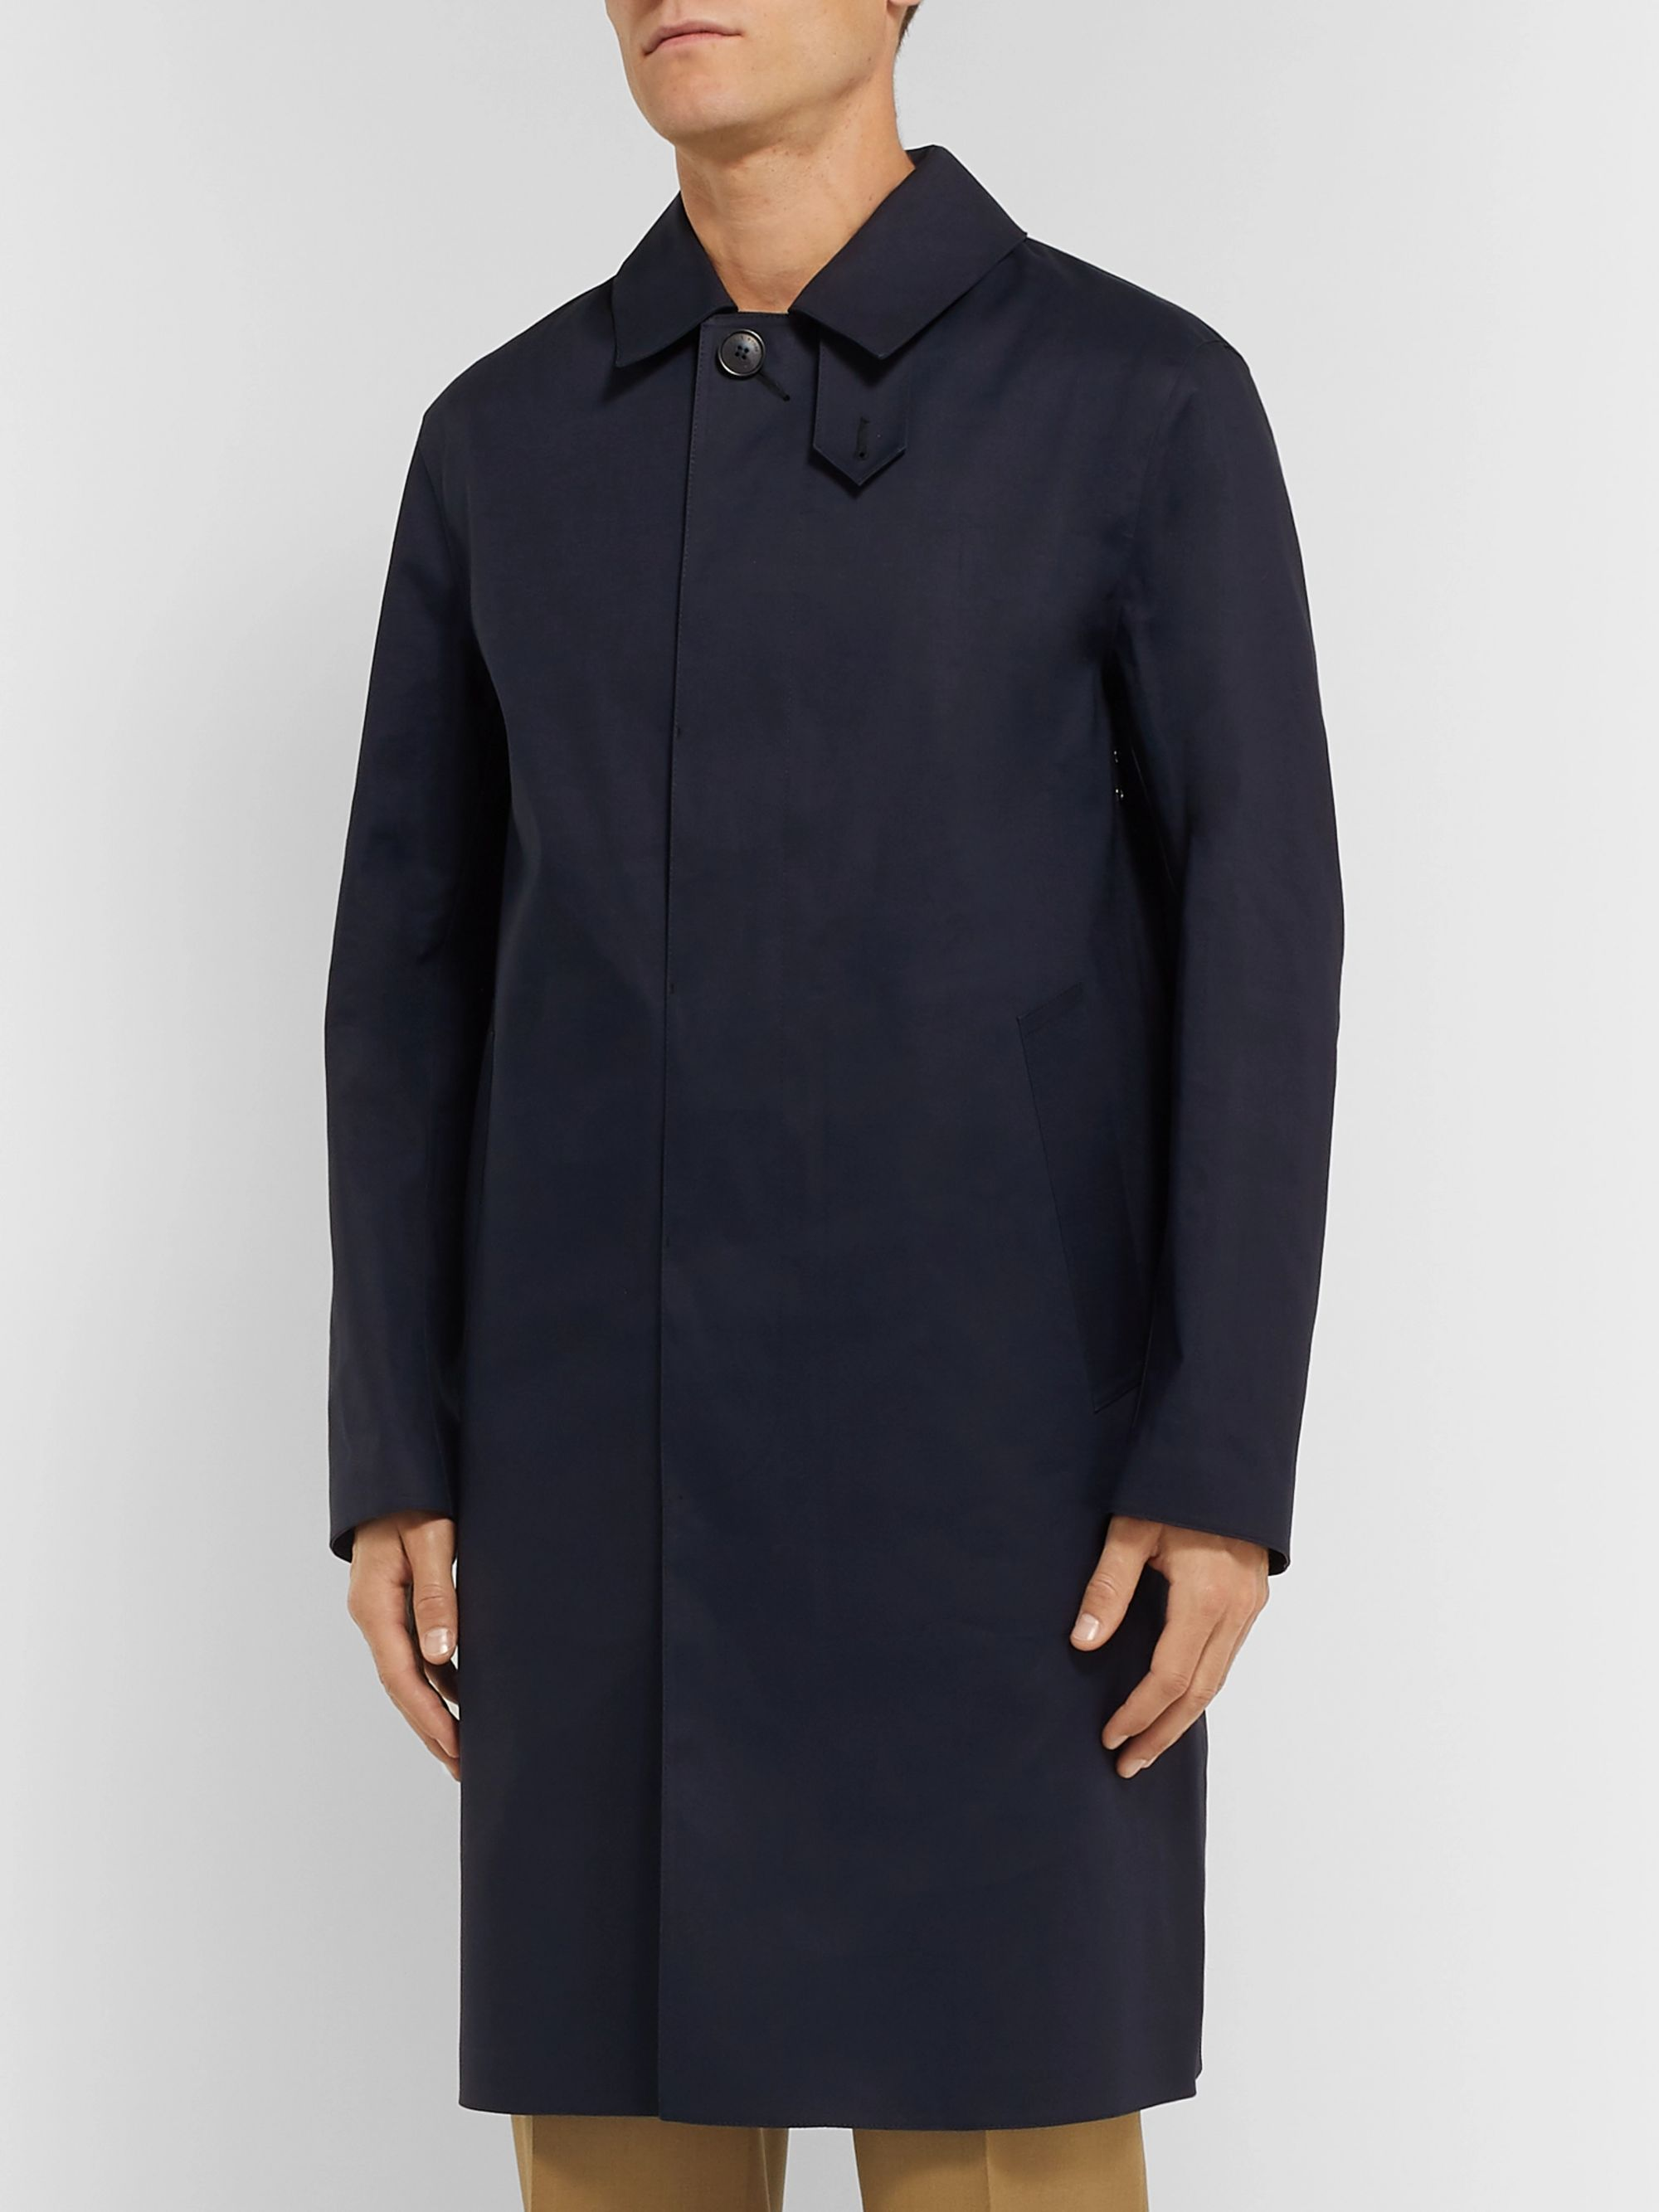 MACKINTOSH Dunkeld Bonded Cotton Raincoat